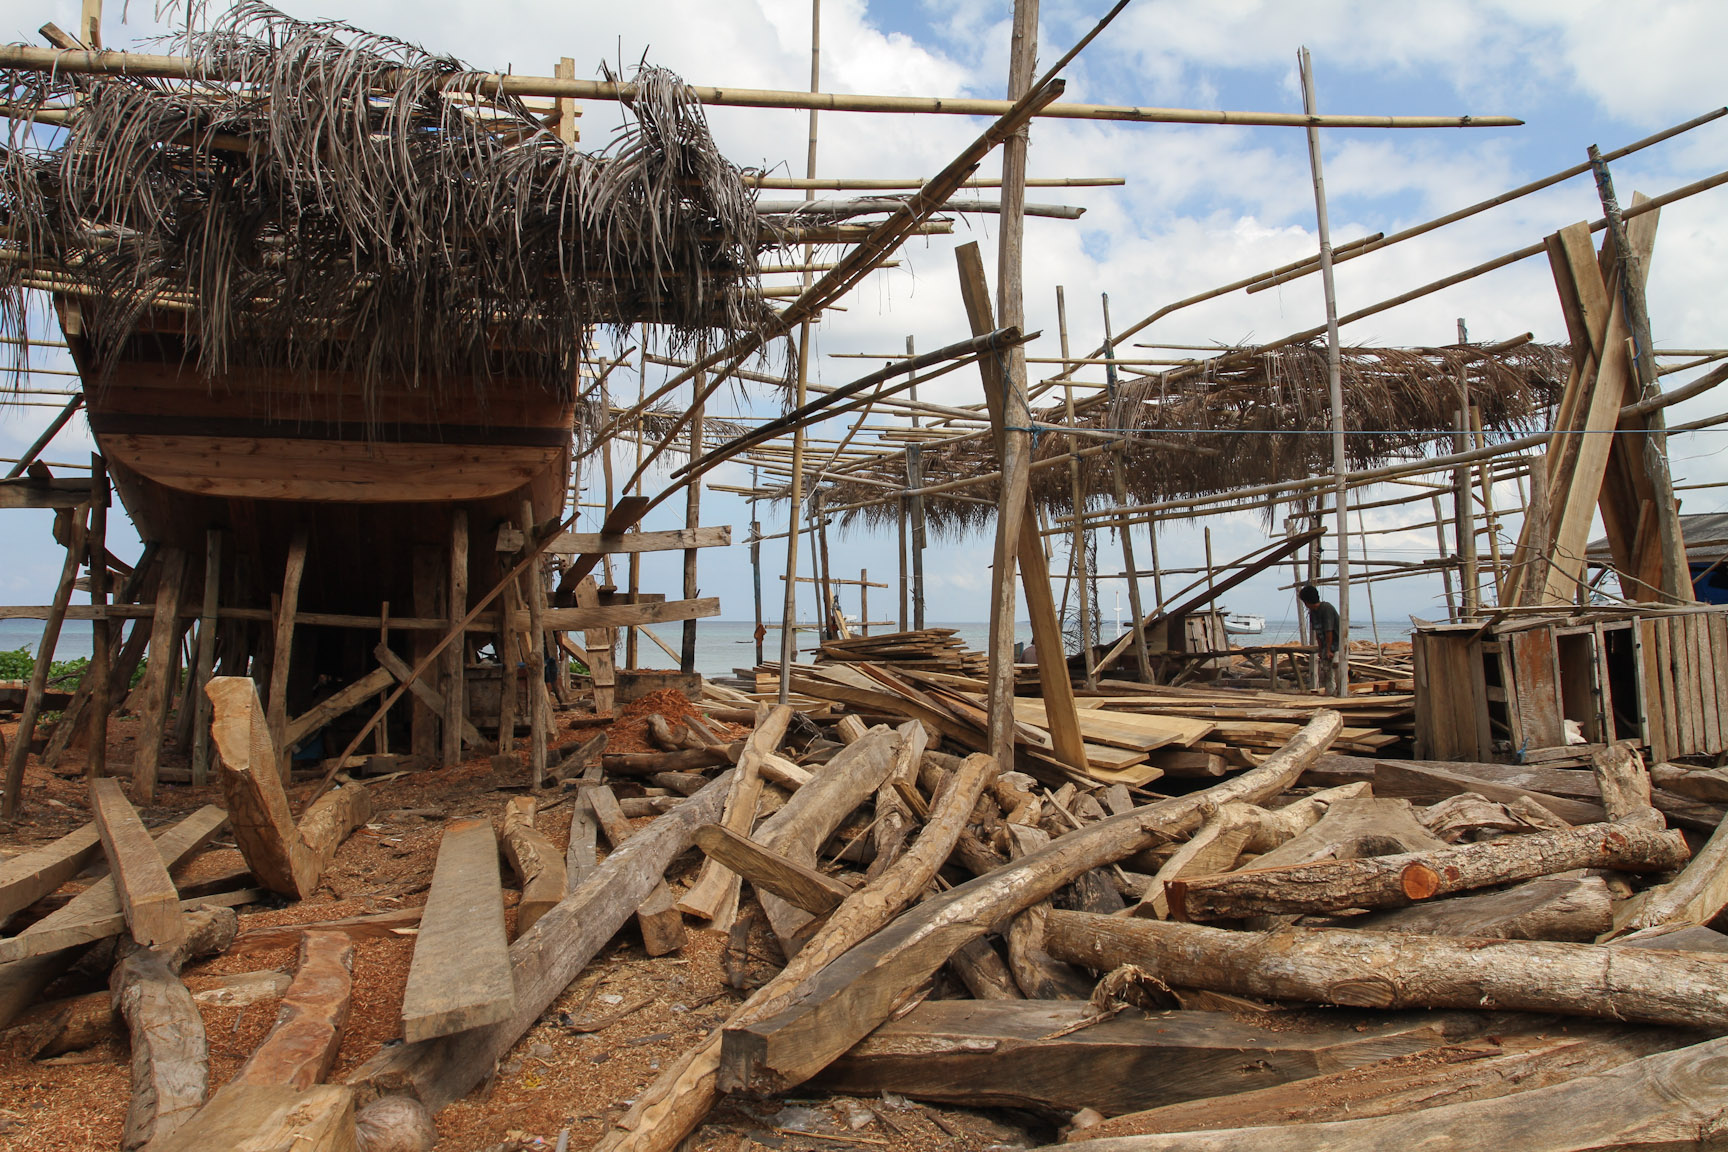 The pinisi boats are constructed right on the beach in Tanah Biru, the wood ready for use.